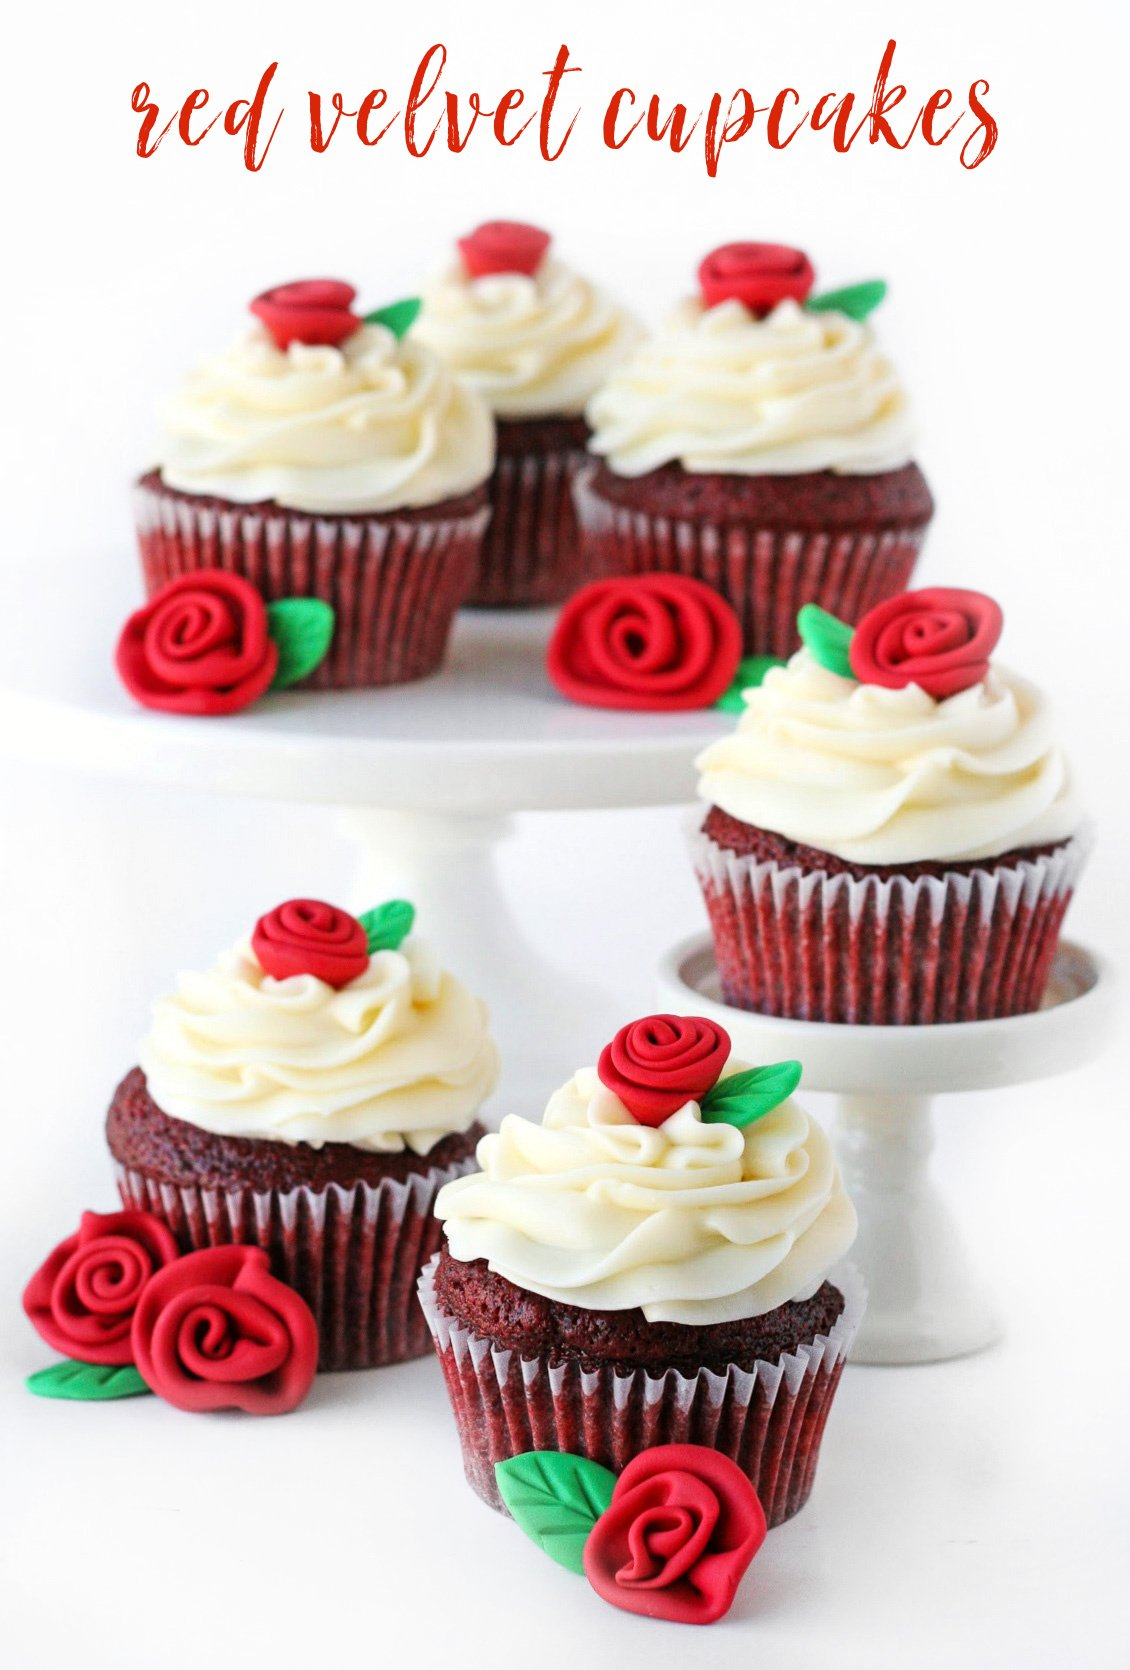 best red velvet cupcakes with cream cheese frosting and fondant roses on white cake pedestals with text overlay